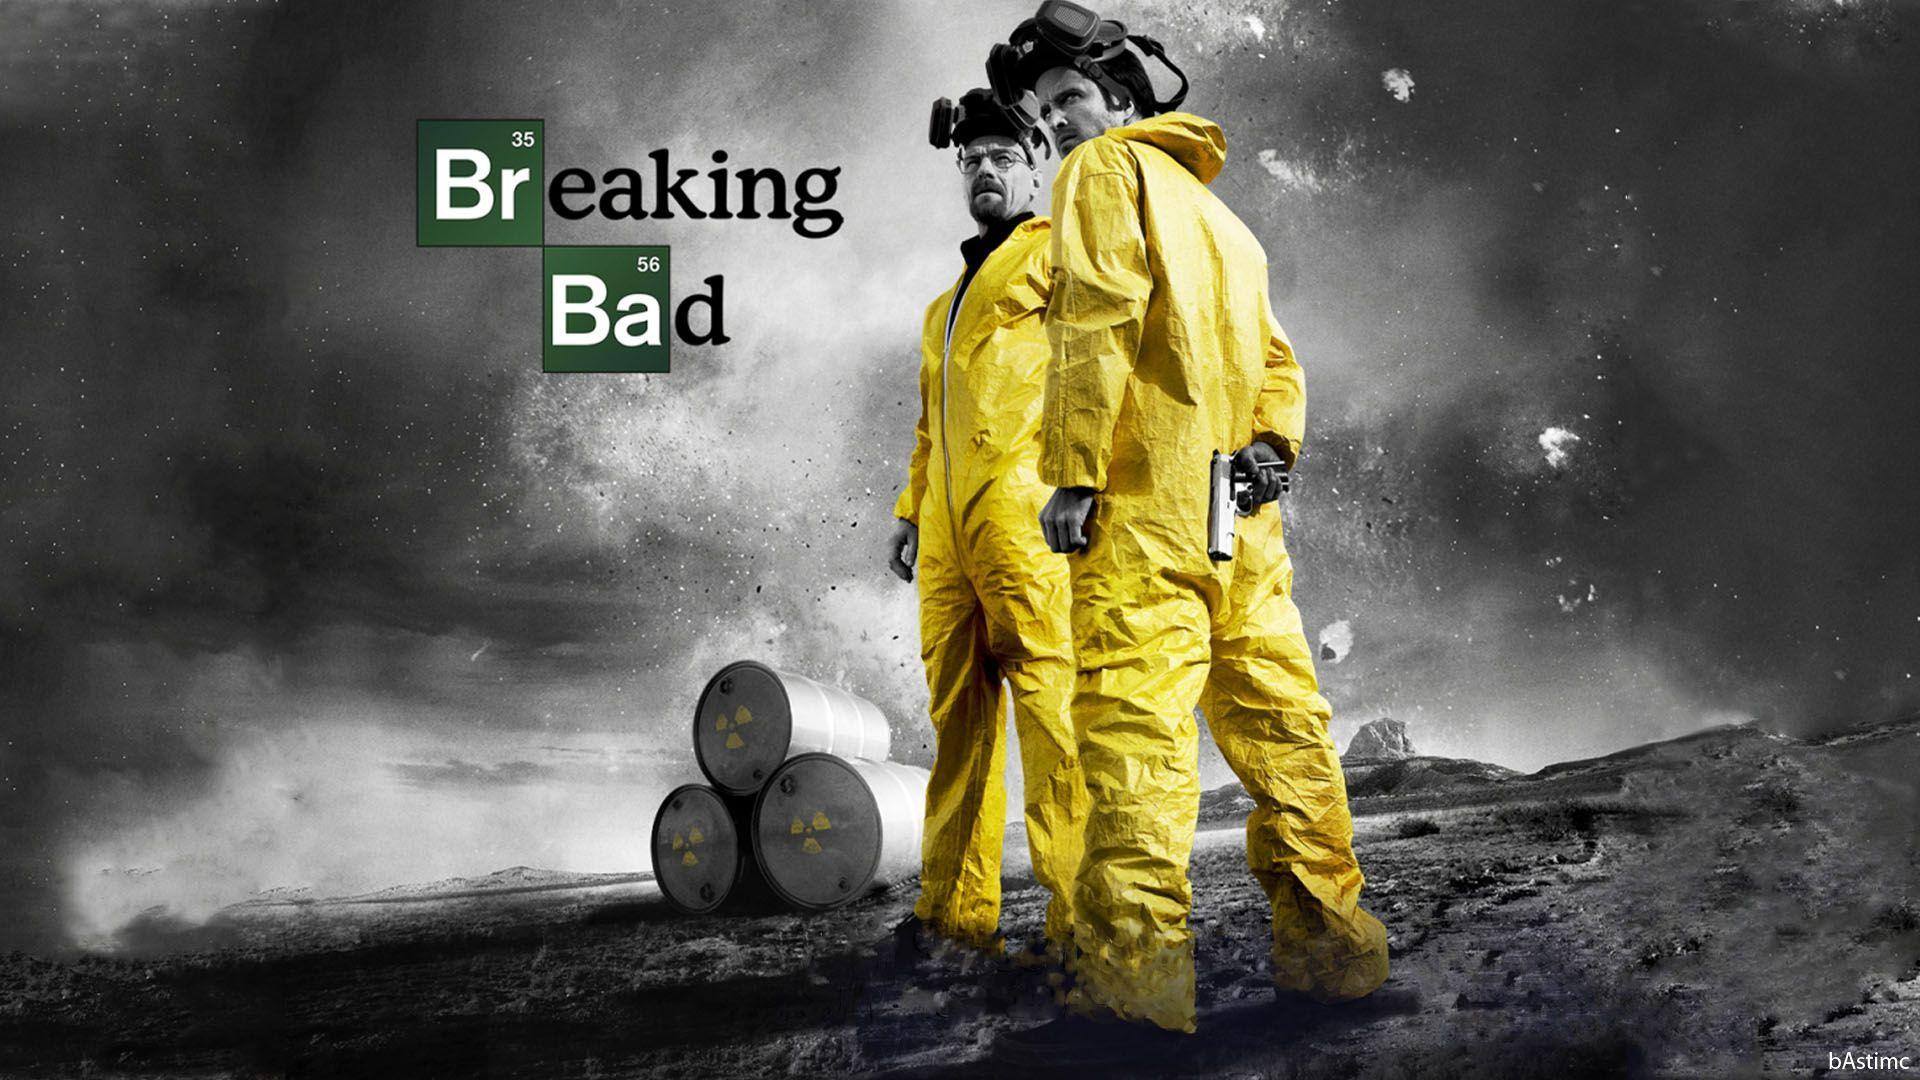 Breaking Bad tv series hbo tv series new tv series comedy netflix and chill tv series